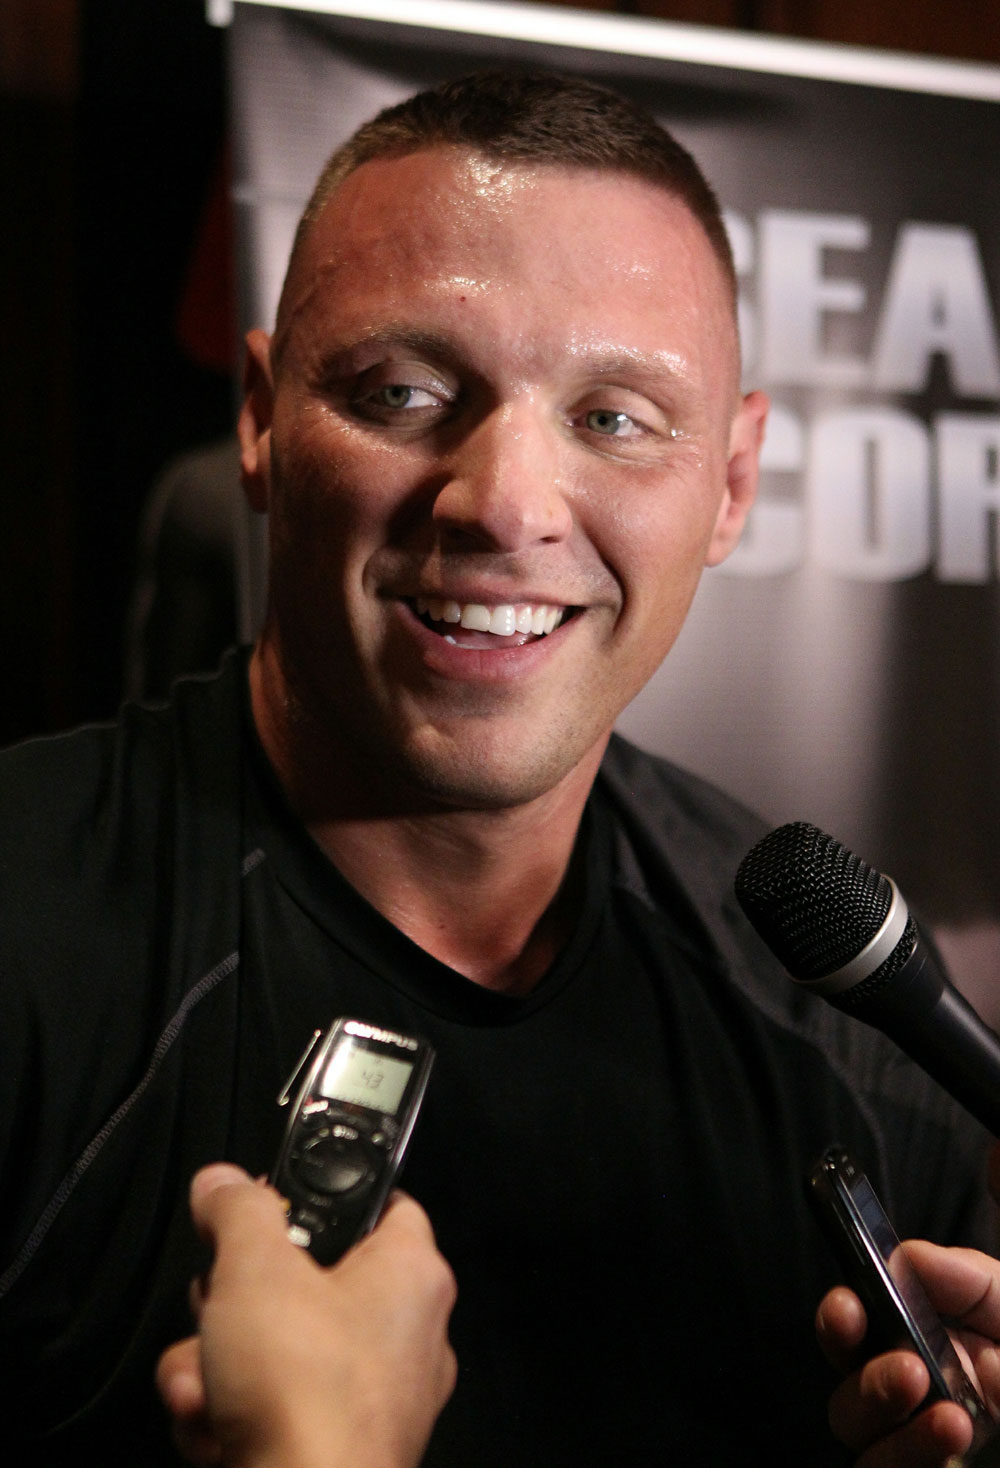 Sean McCorkle answers questions from the press at the UFC 124 open workouts at the Marriott Chateau Champlain in on December 8, 2010 in Montreal, Quebec, Canada.